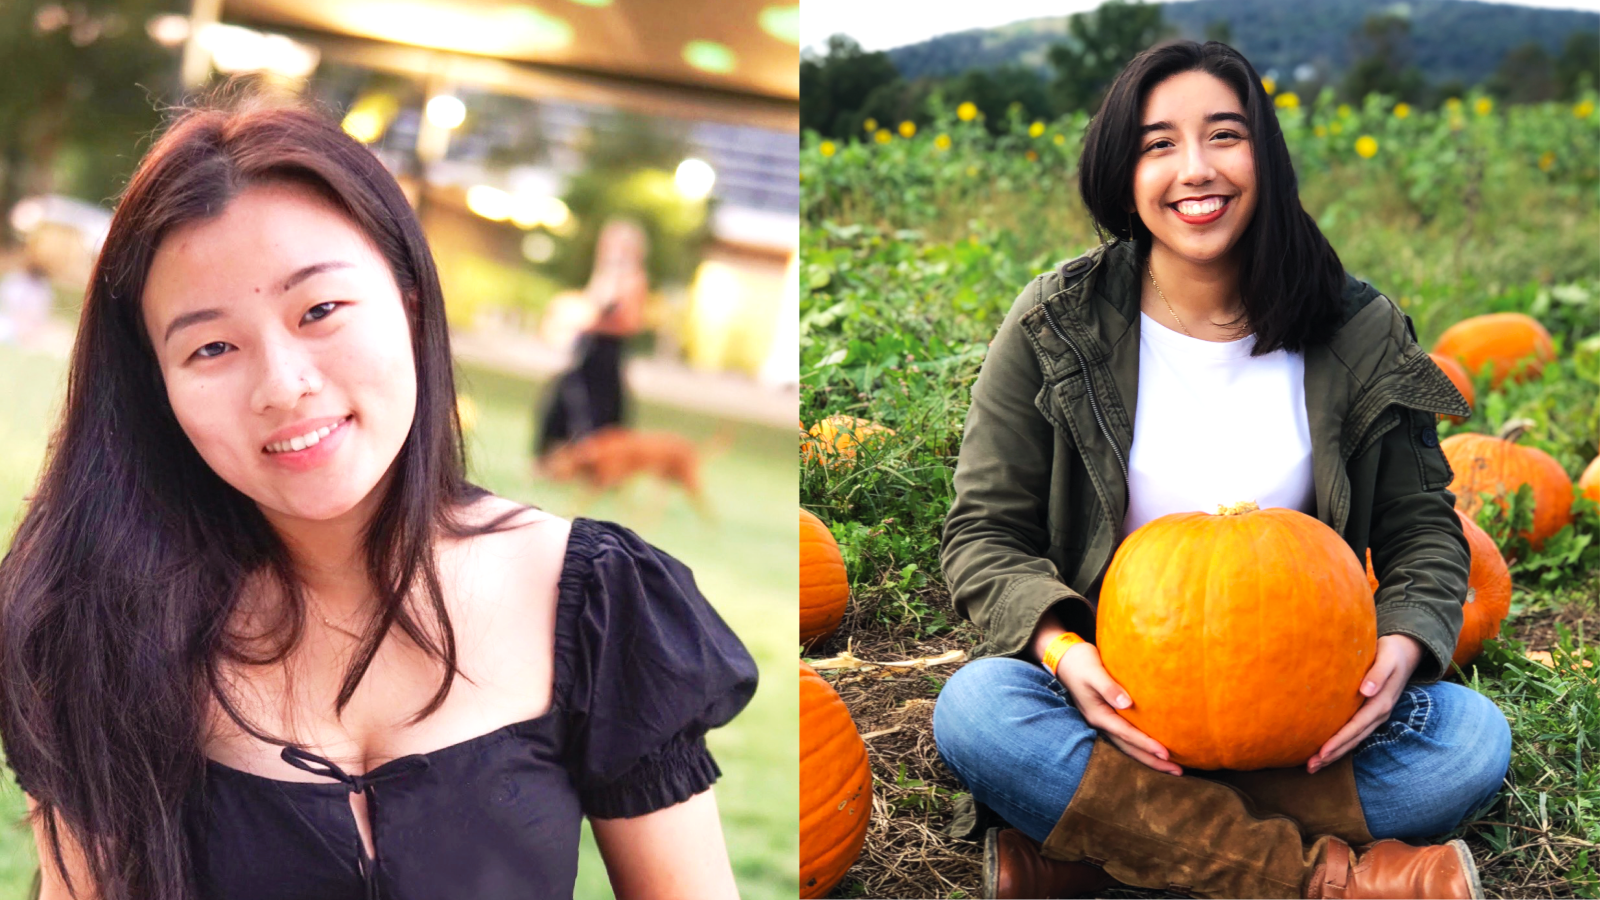 Heather Yu Huang wearing a black shirt and and Jennifer Martínez Sánchez holding a pumkin